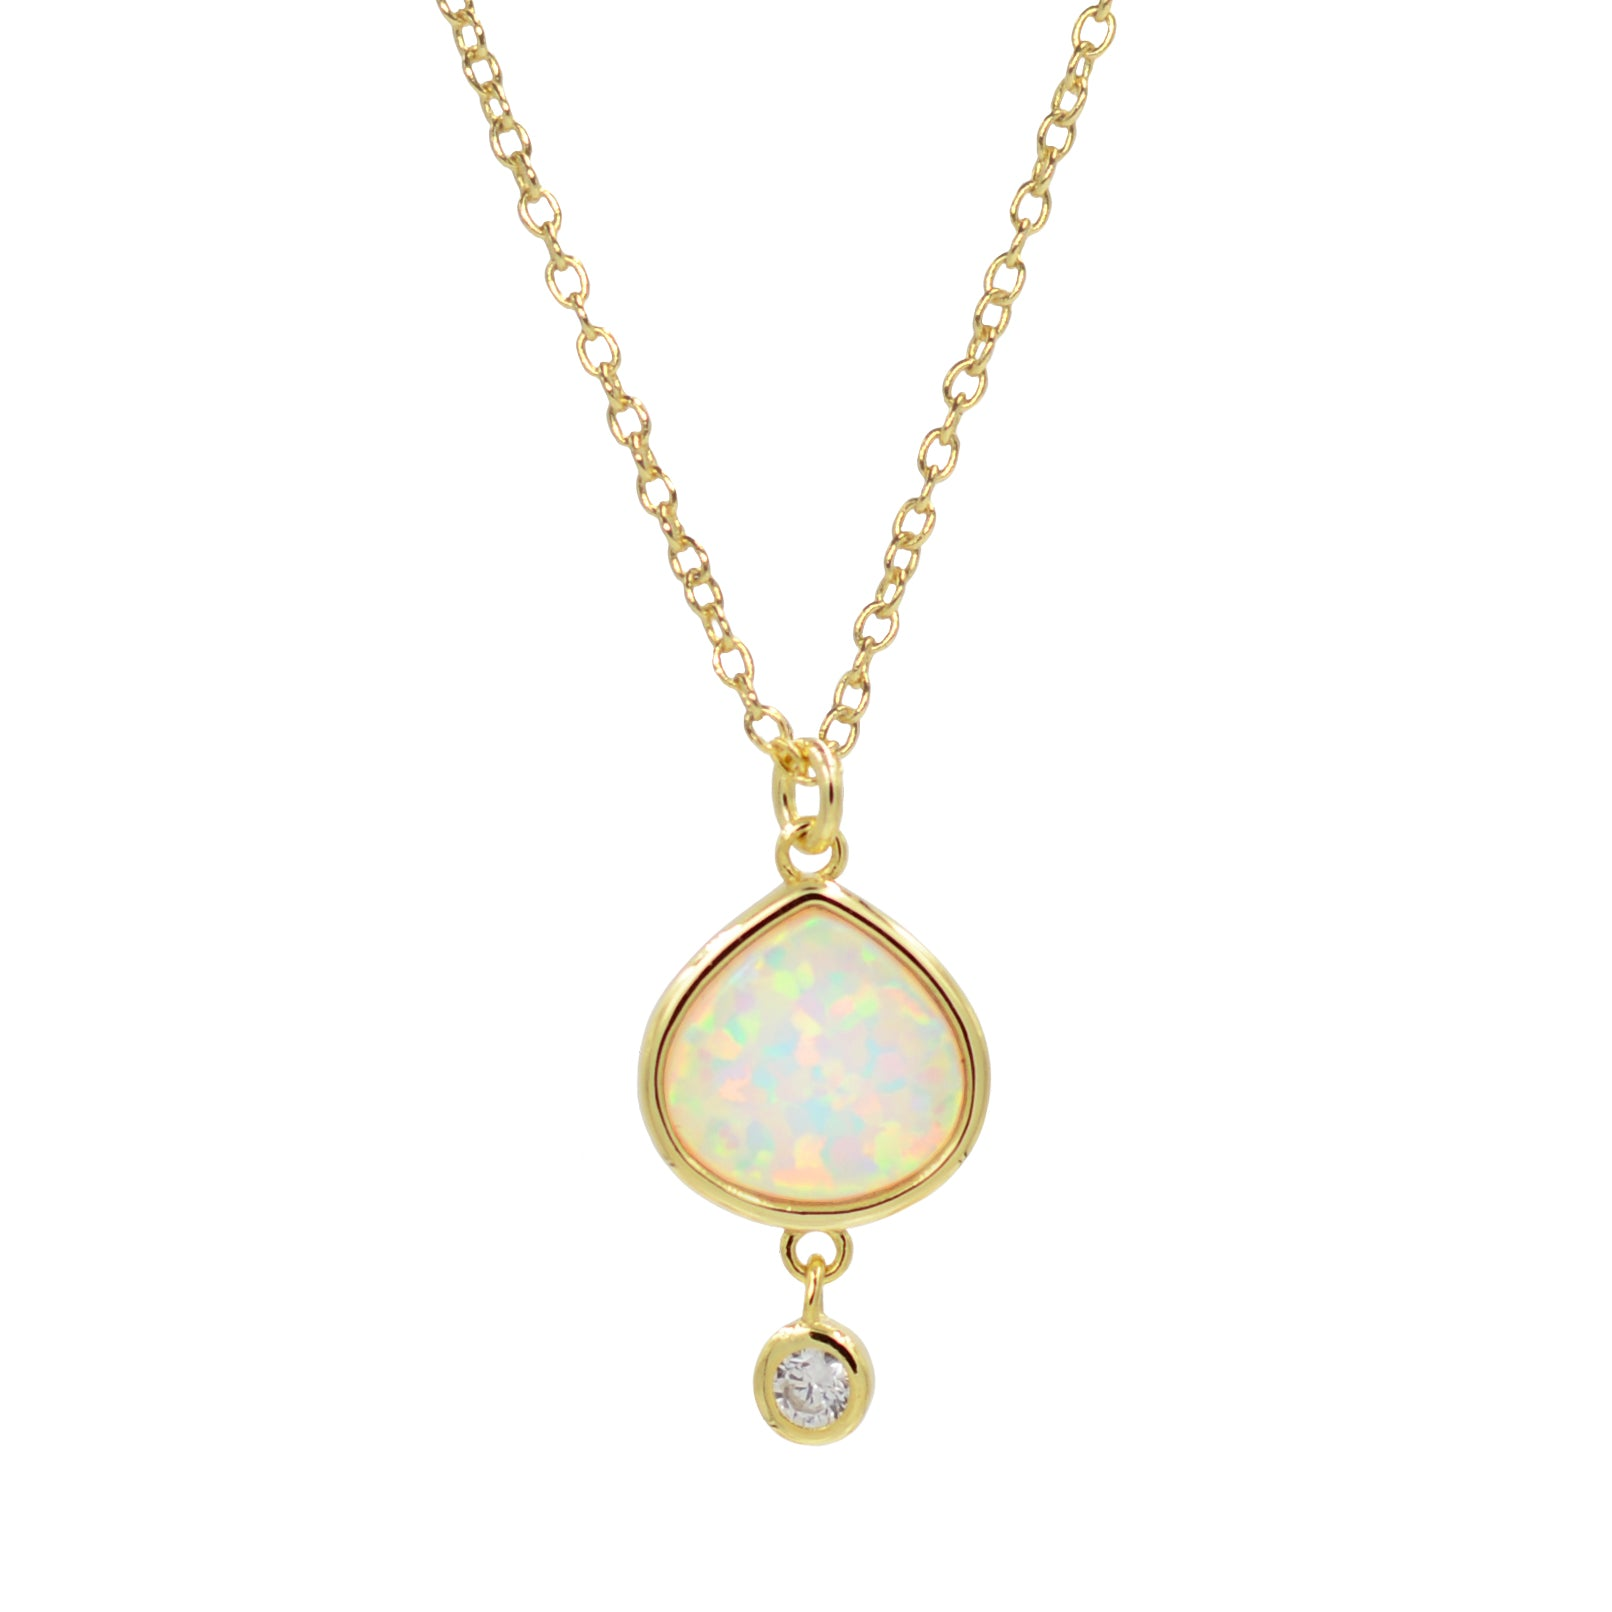 Best Friend white opal pear necklace with crystal drop